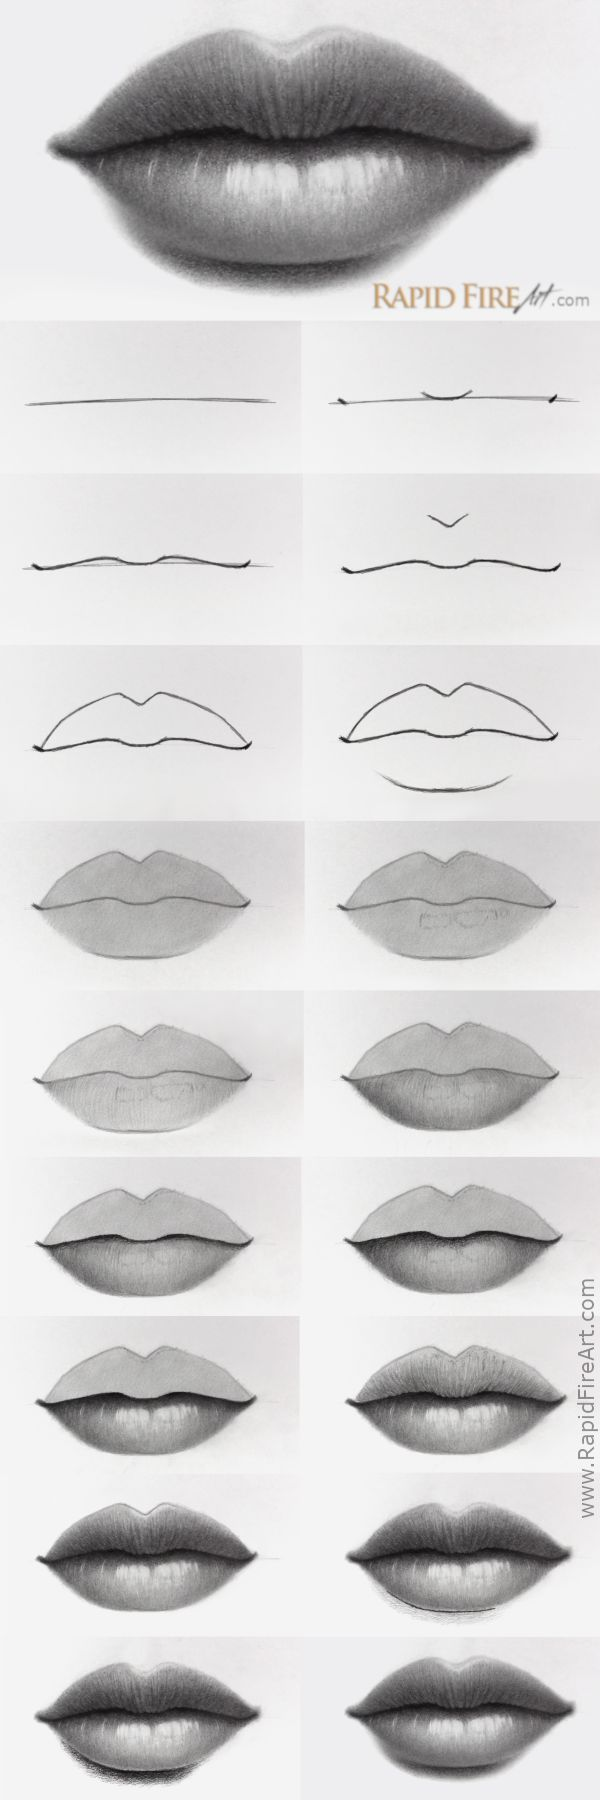 How to Draw Lips - #Draw #lips #watches